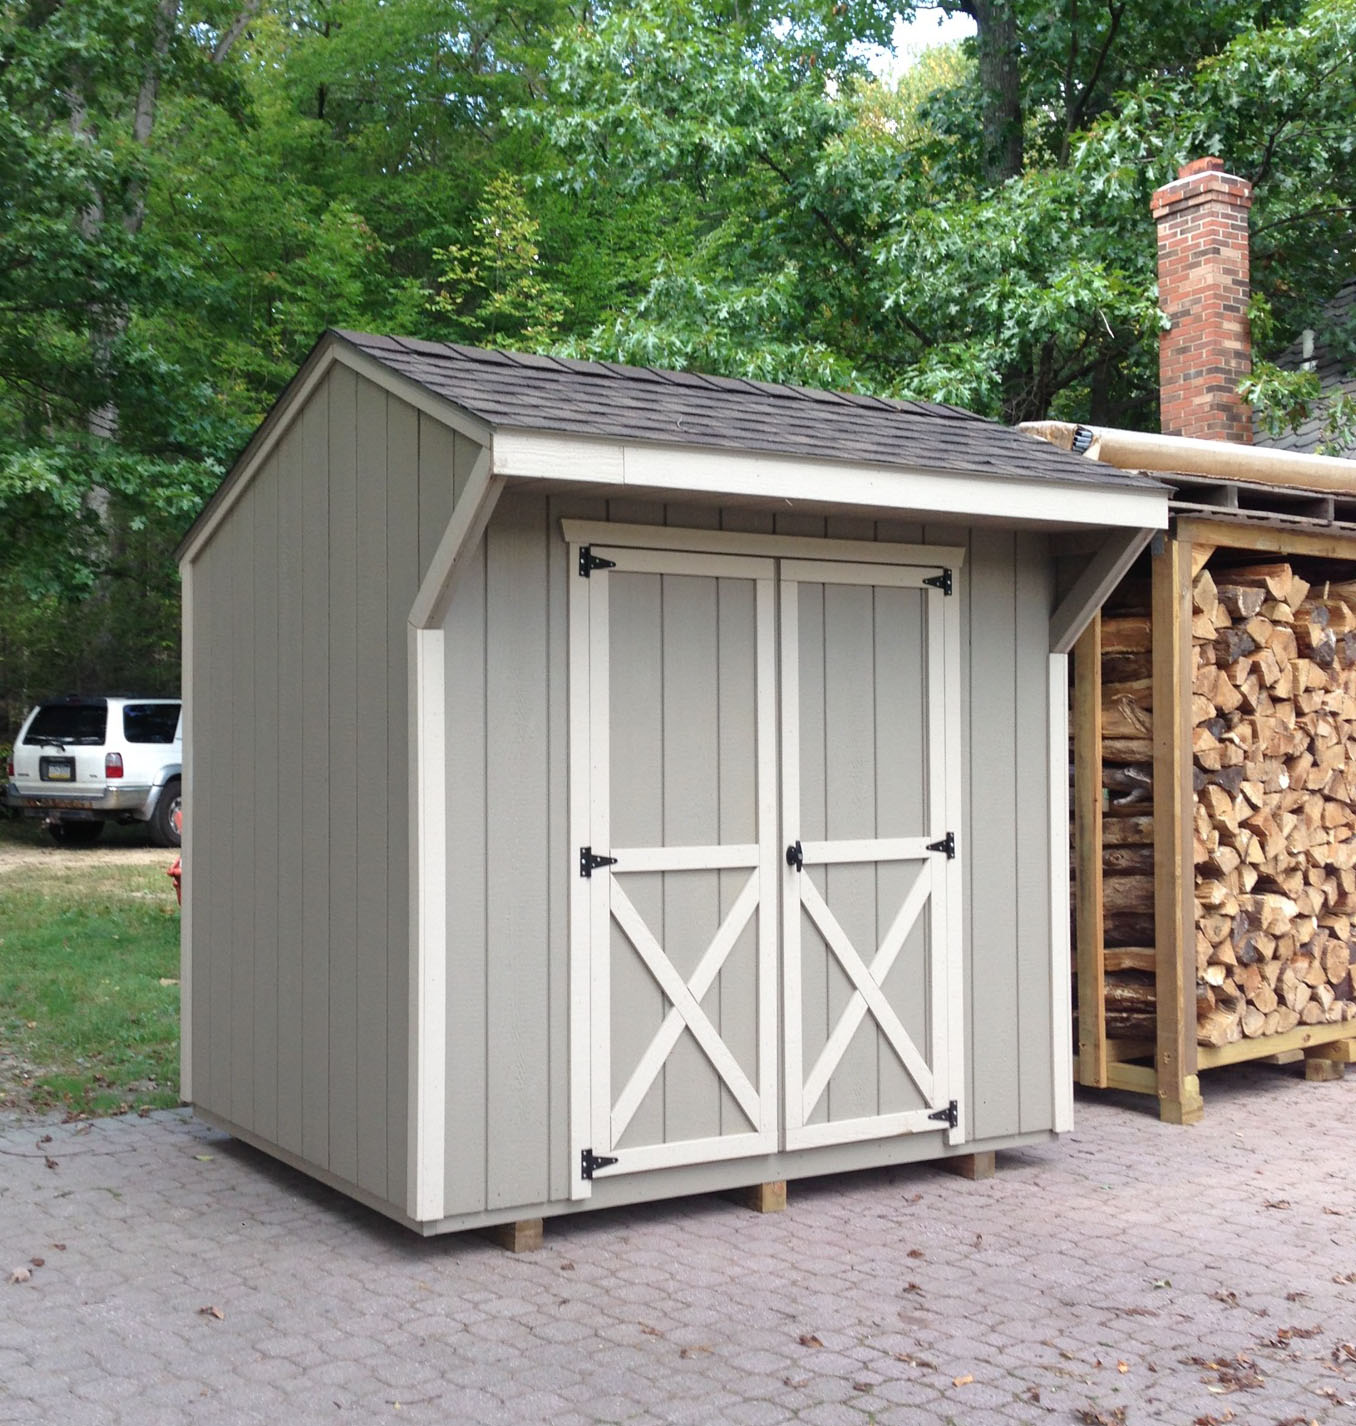 Good sheds hollidaysburg pa great storage for Inexpensive sheds